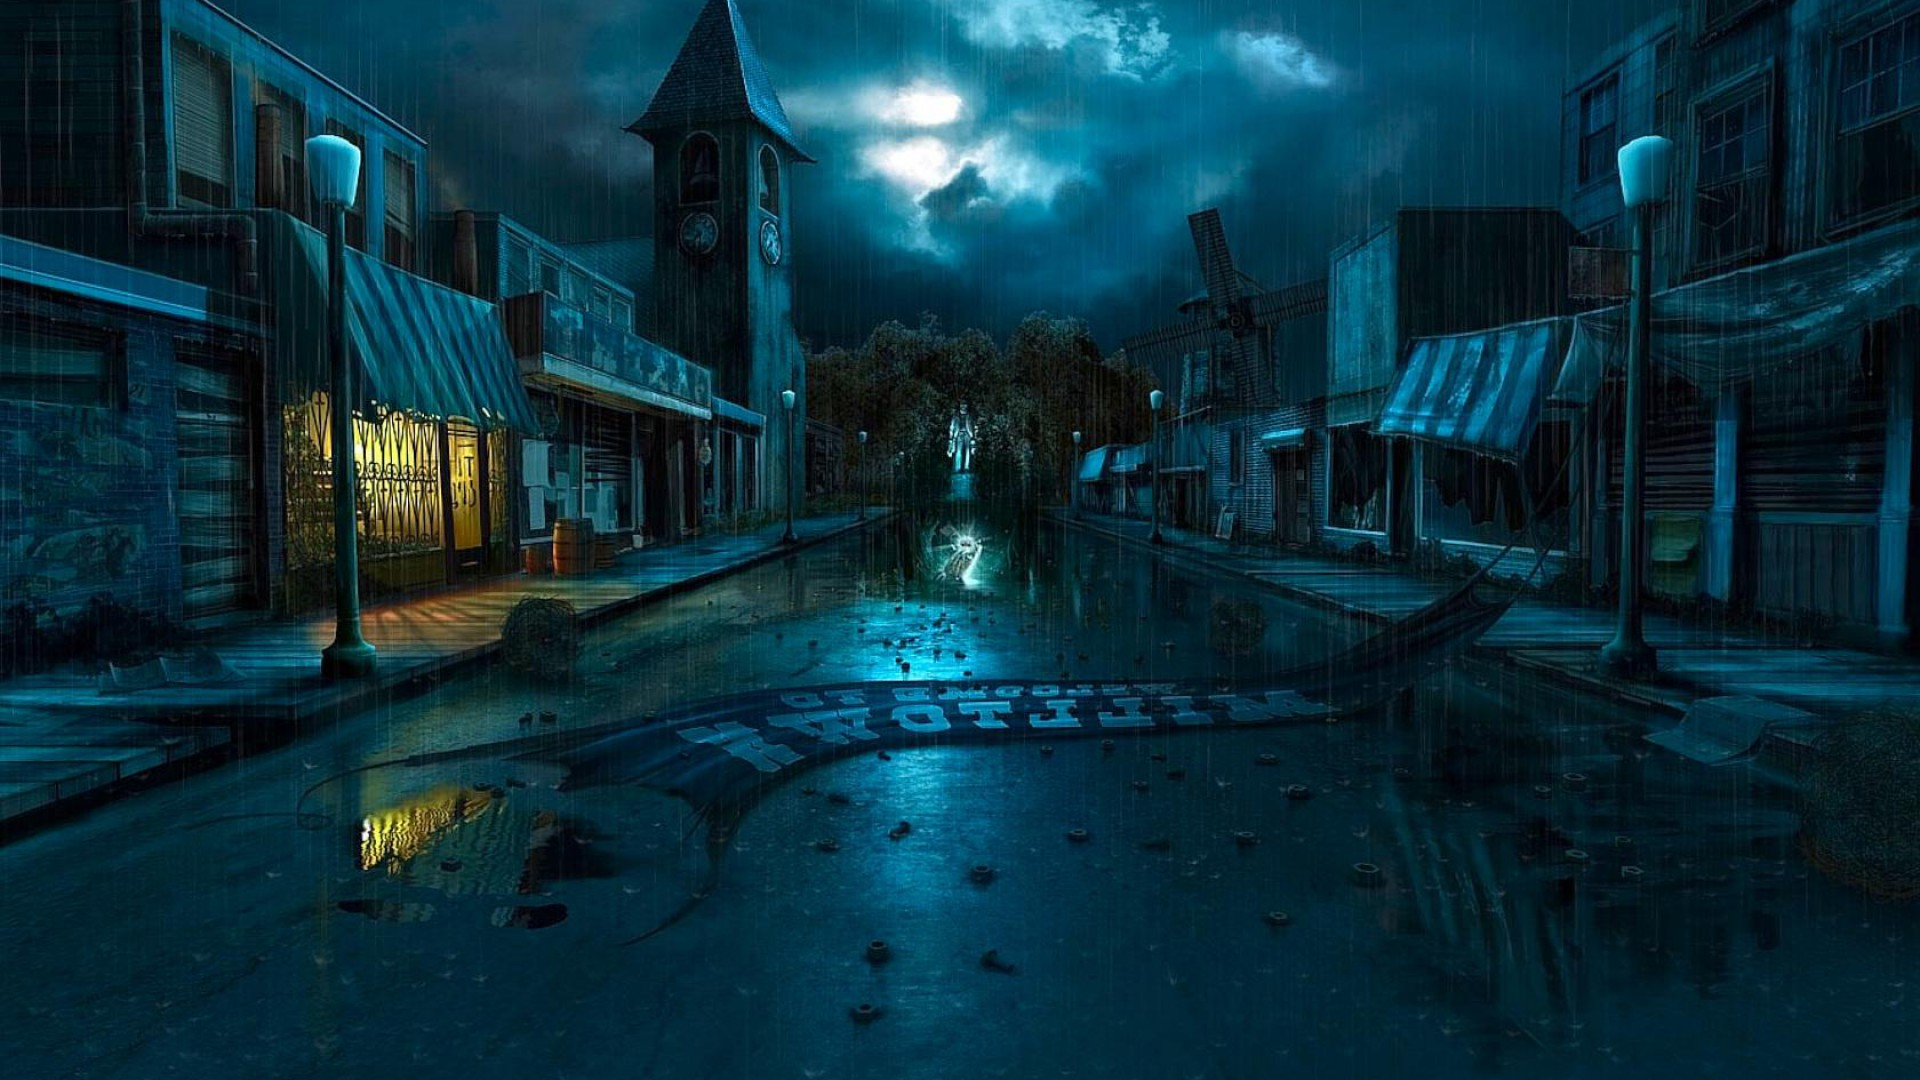 abandoned city at night full hd wallpaper and background